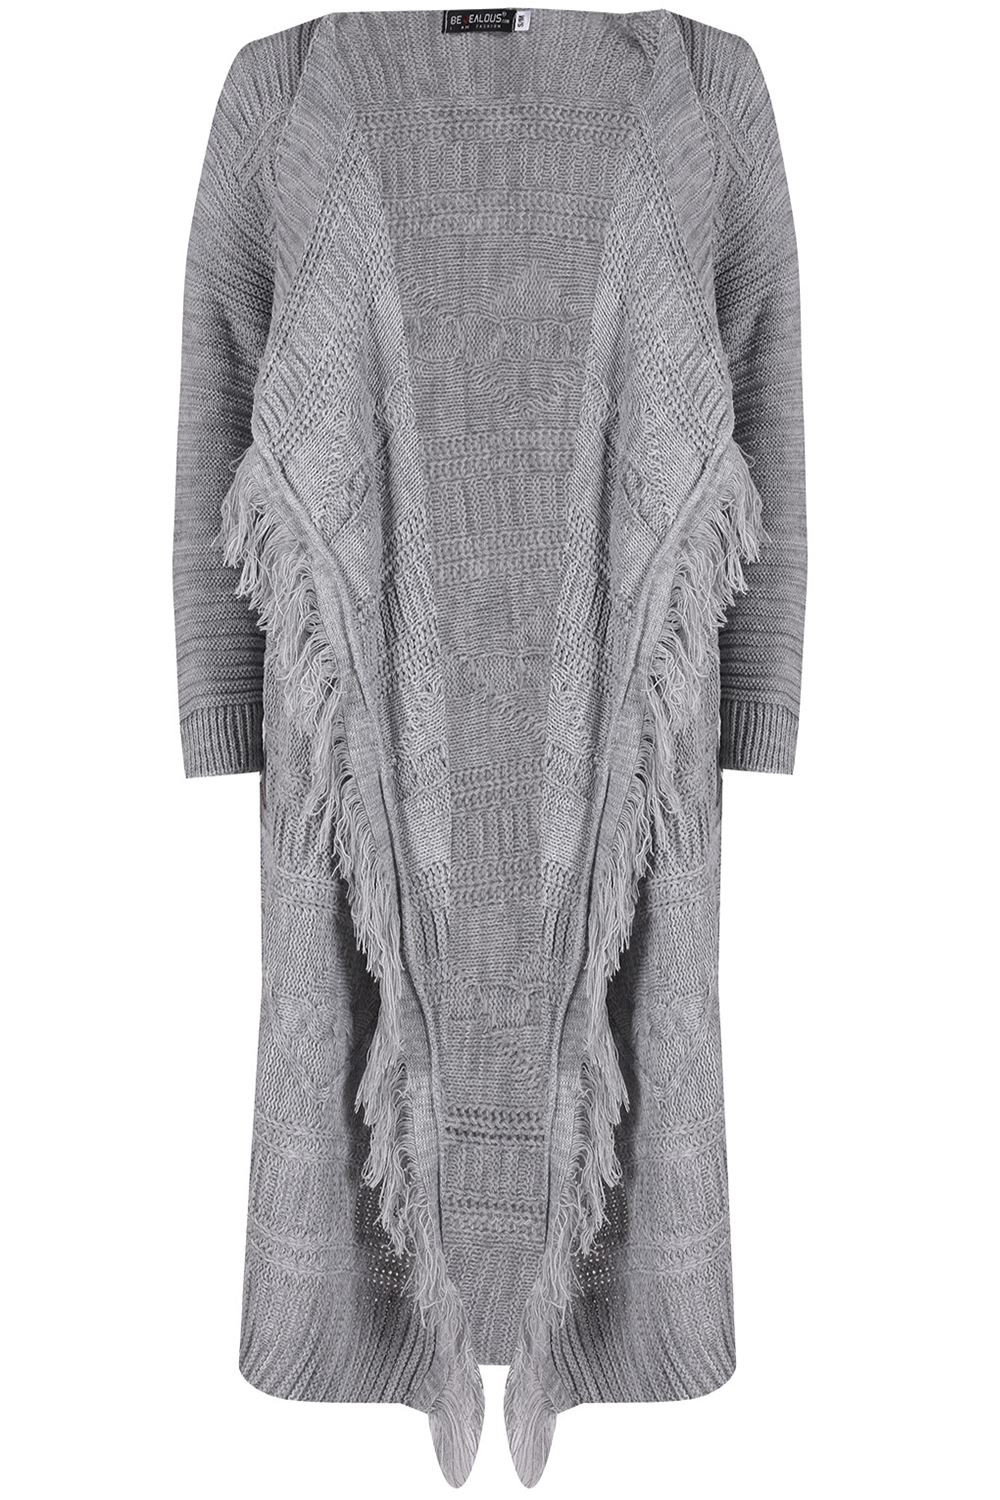 Fresh Womens Cardigan La S Chunky Cable Knit Tassel Long Womens Chunky Cable Knit Sweater Of Luxury 45 Models Womens Chunky Cable Knit Sweater